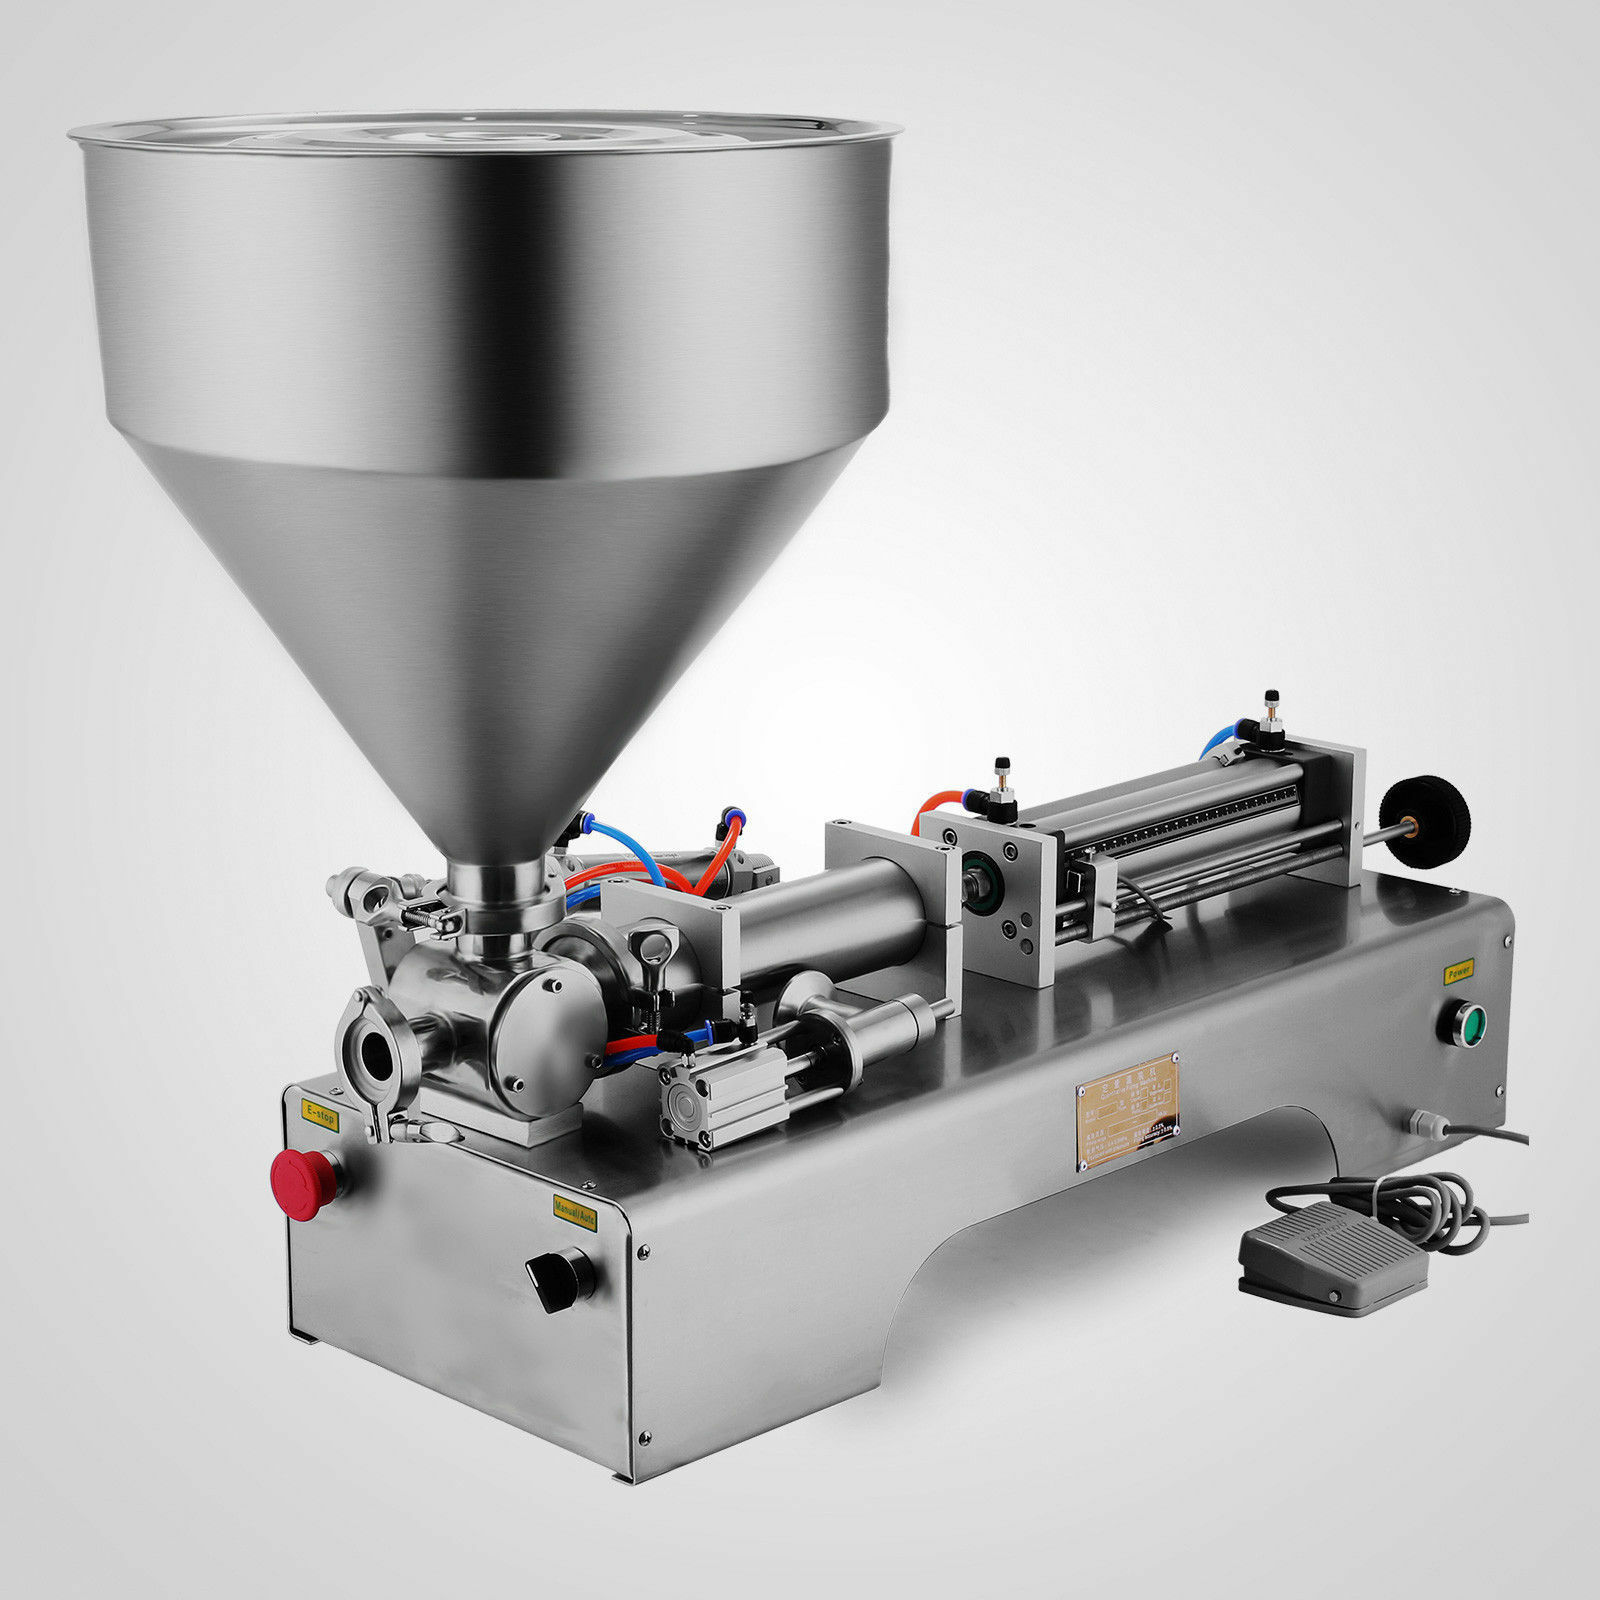 50-500ML Pneumatic Liquid Filling Machine Cream 304 Stainless 25bottles/min Suitable For Multiple Industries